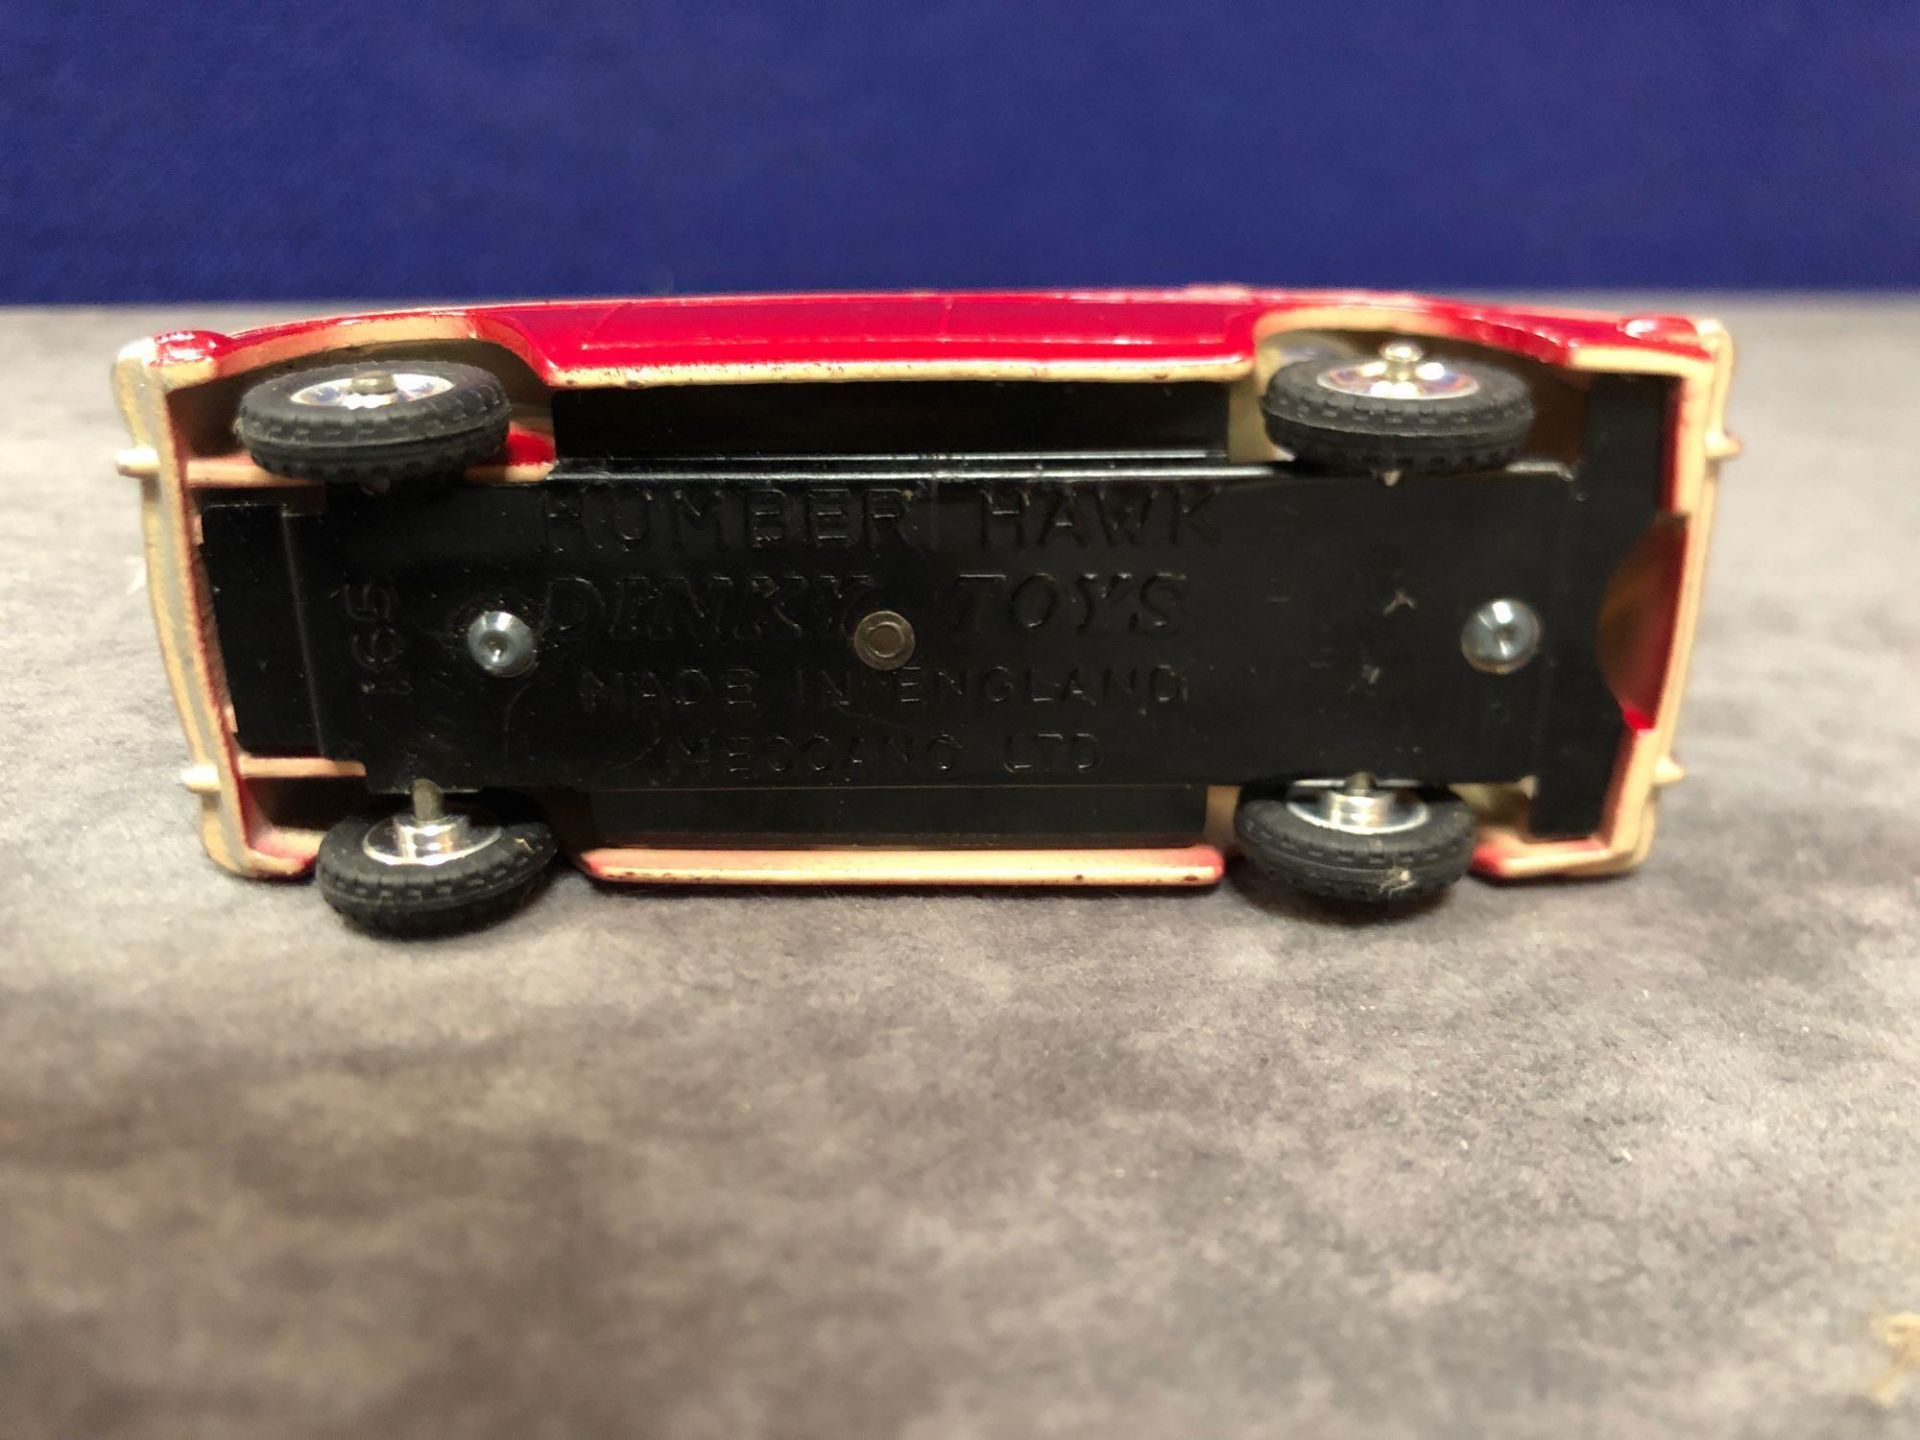 Dinky #165 Humber Hawk Maroon/Fawn - Spun Hubs With Box 1959-1963 - Image 4 of 4